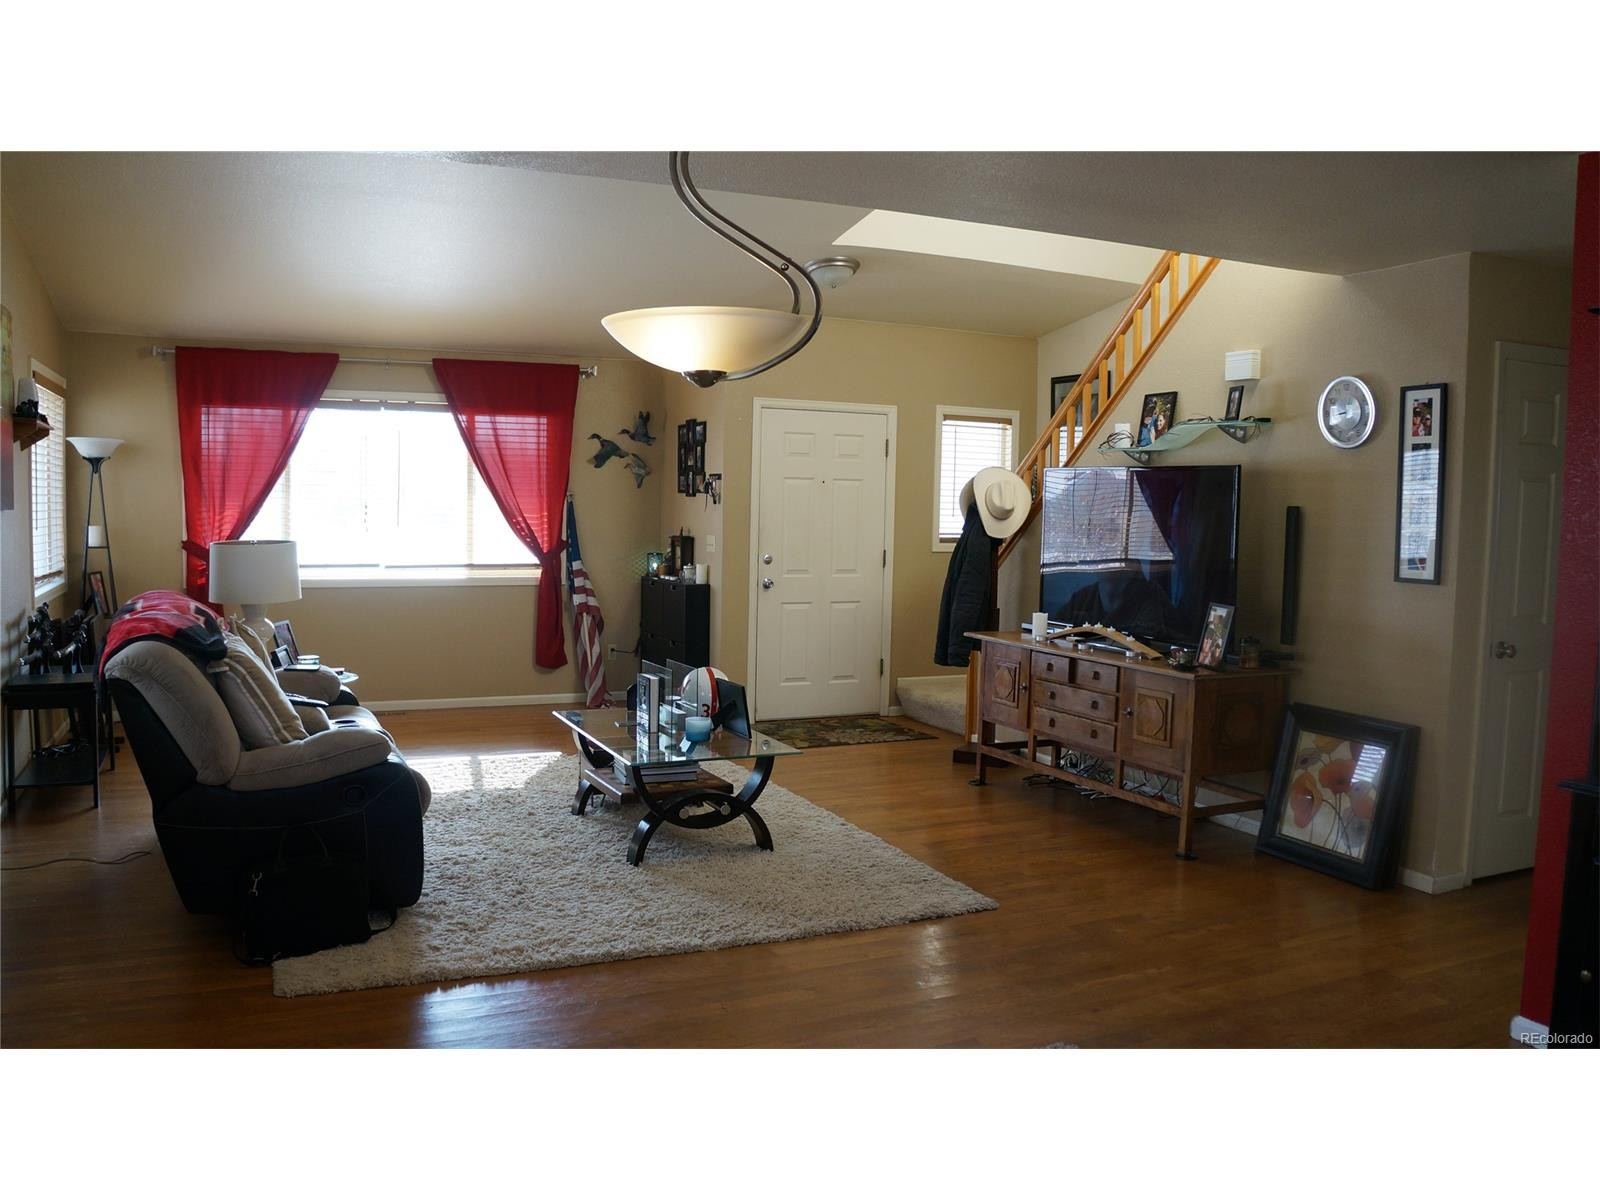 MLS# 8850556 - 6 - 2245 E 127th Place, Thornton, CO 80241